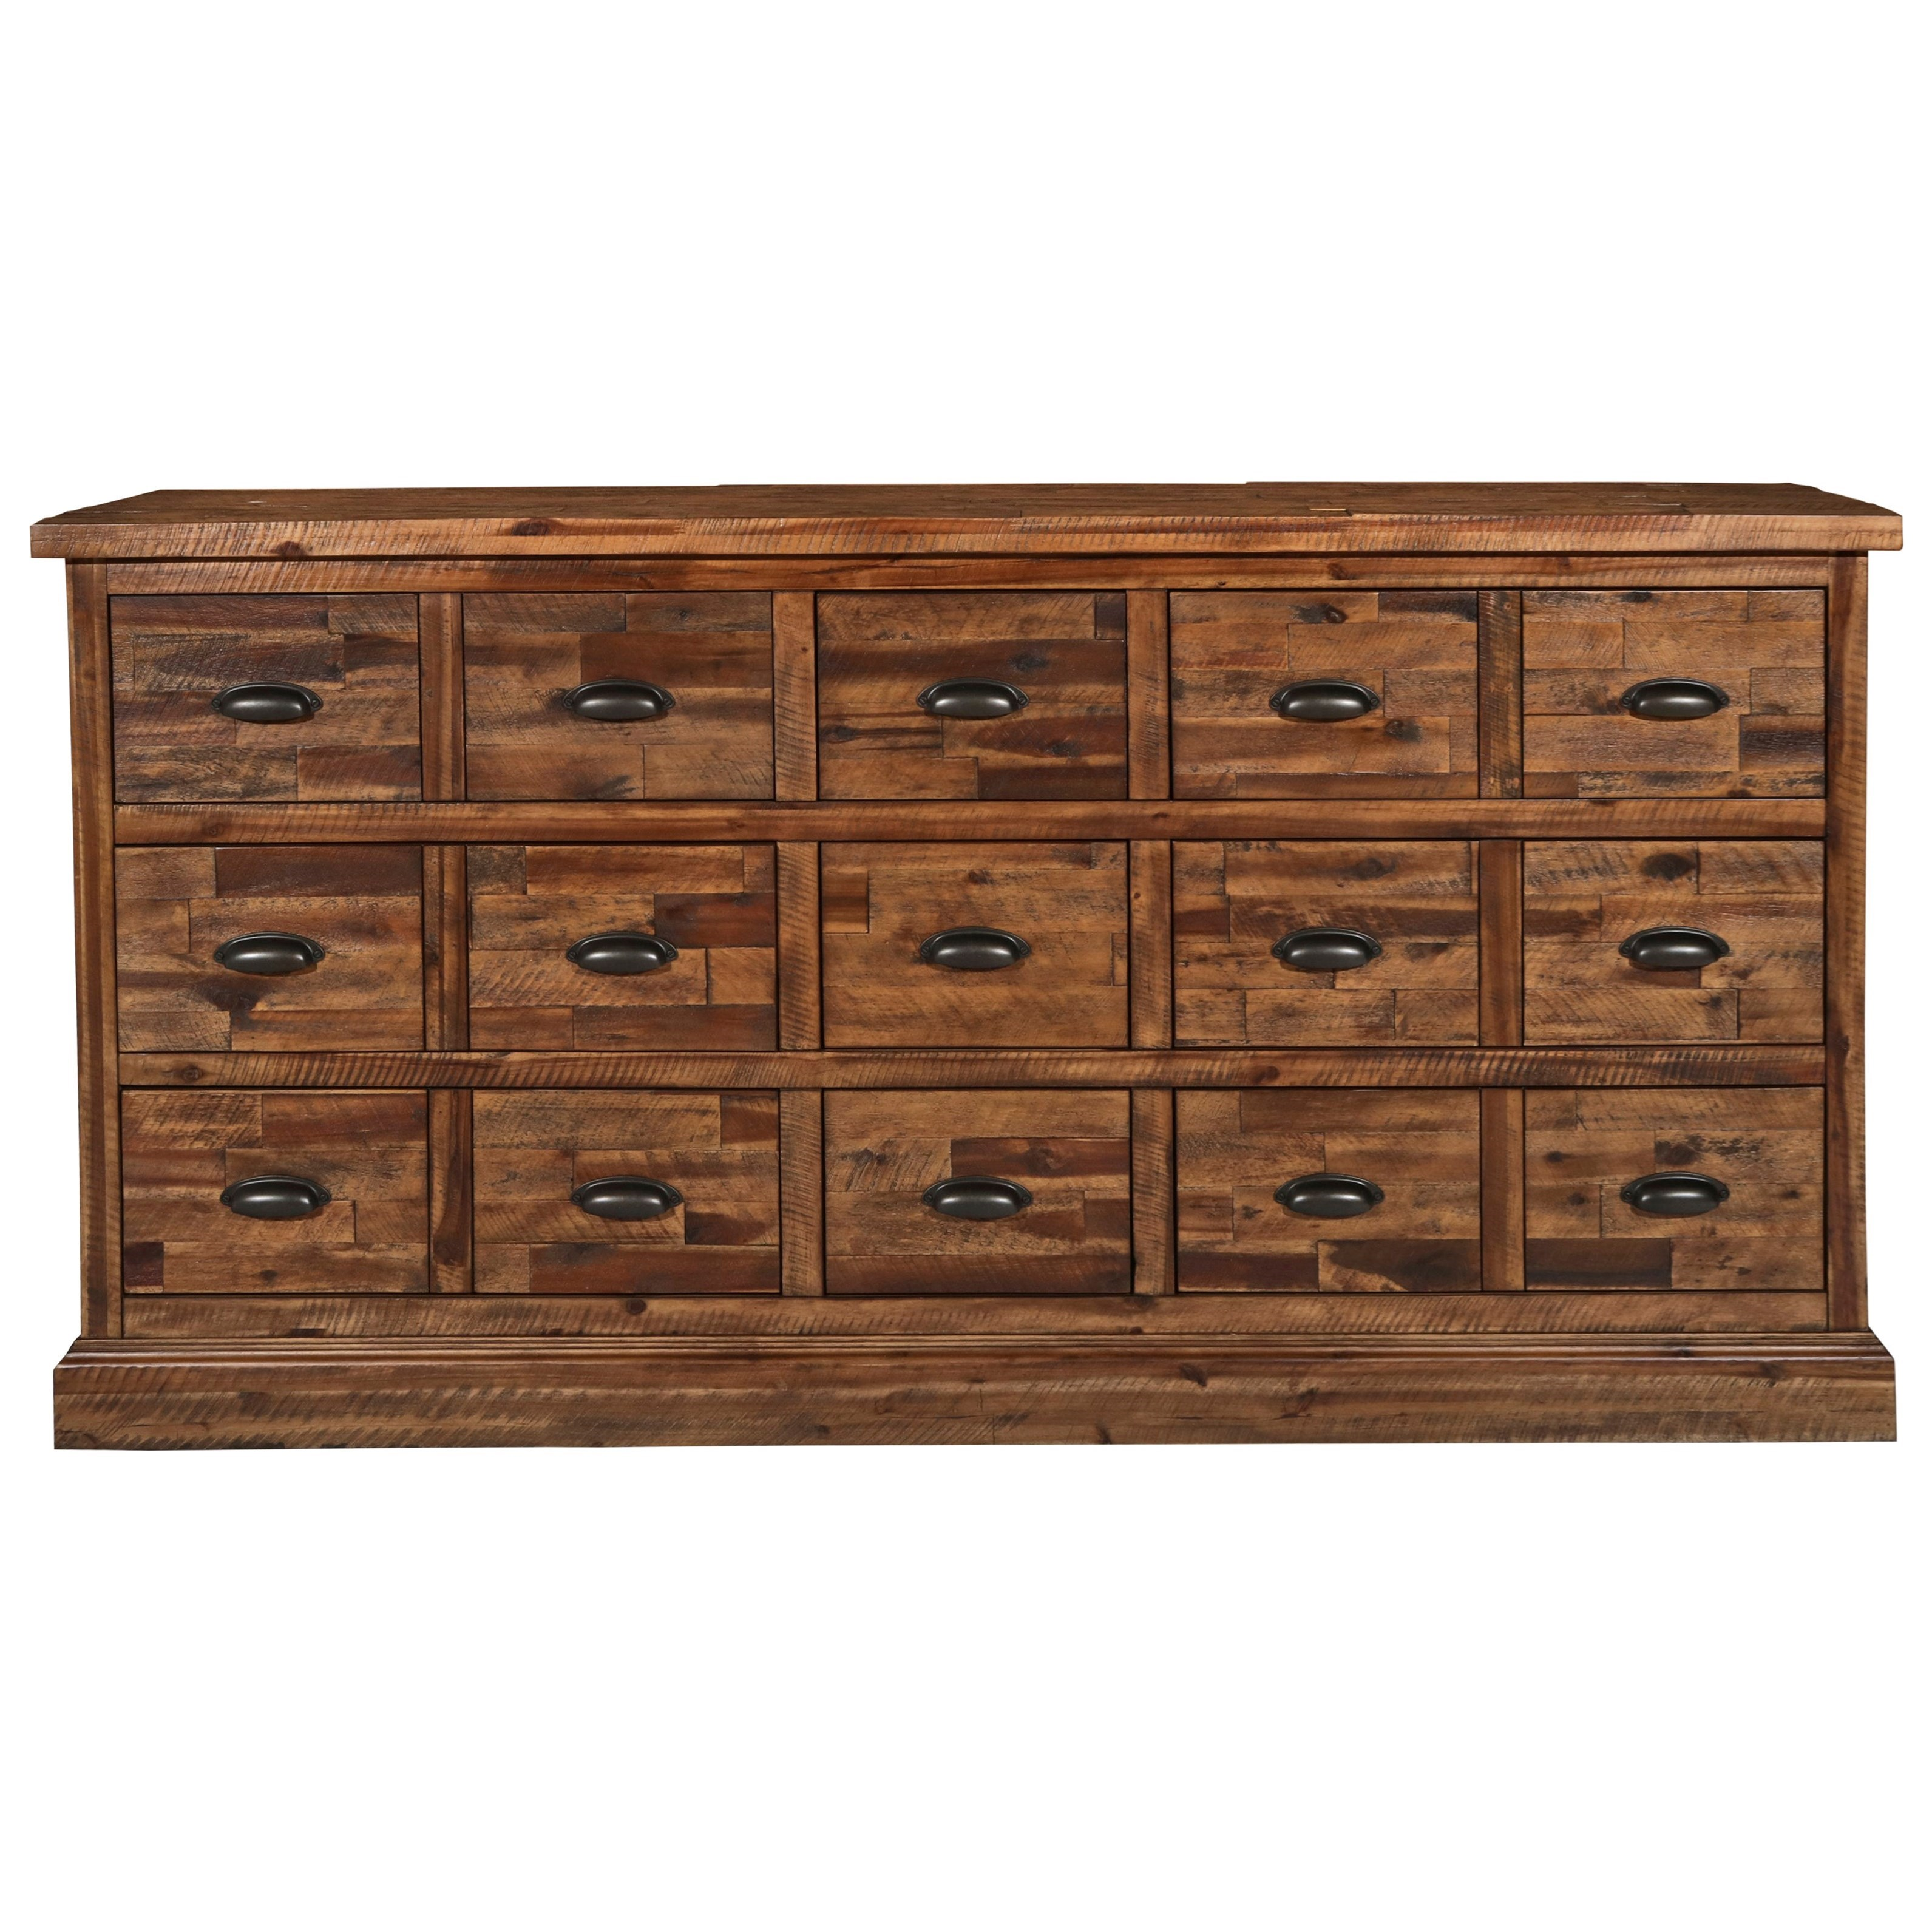 Normandy Sideboard by New Classic at H.L. Stephens